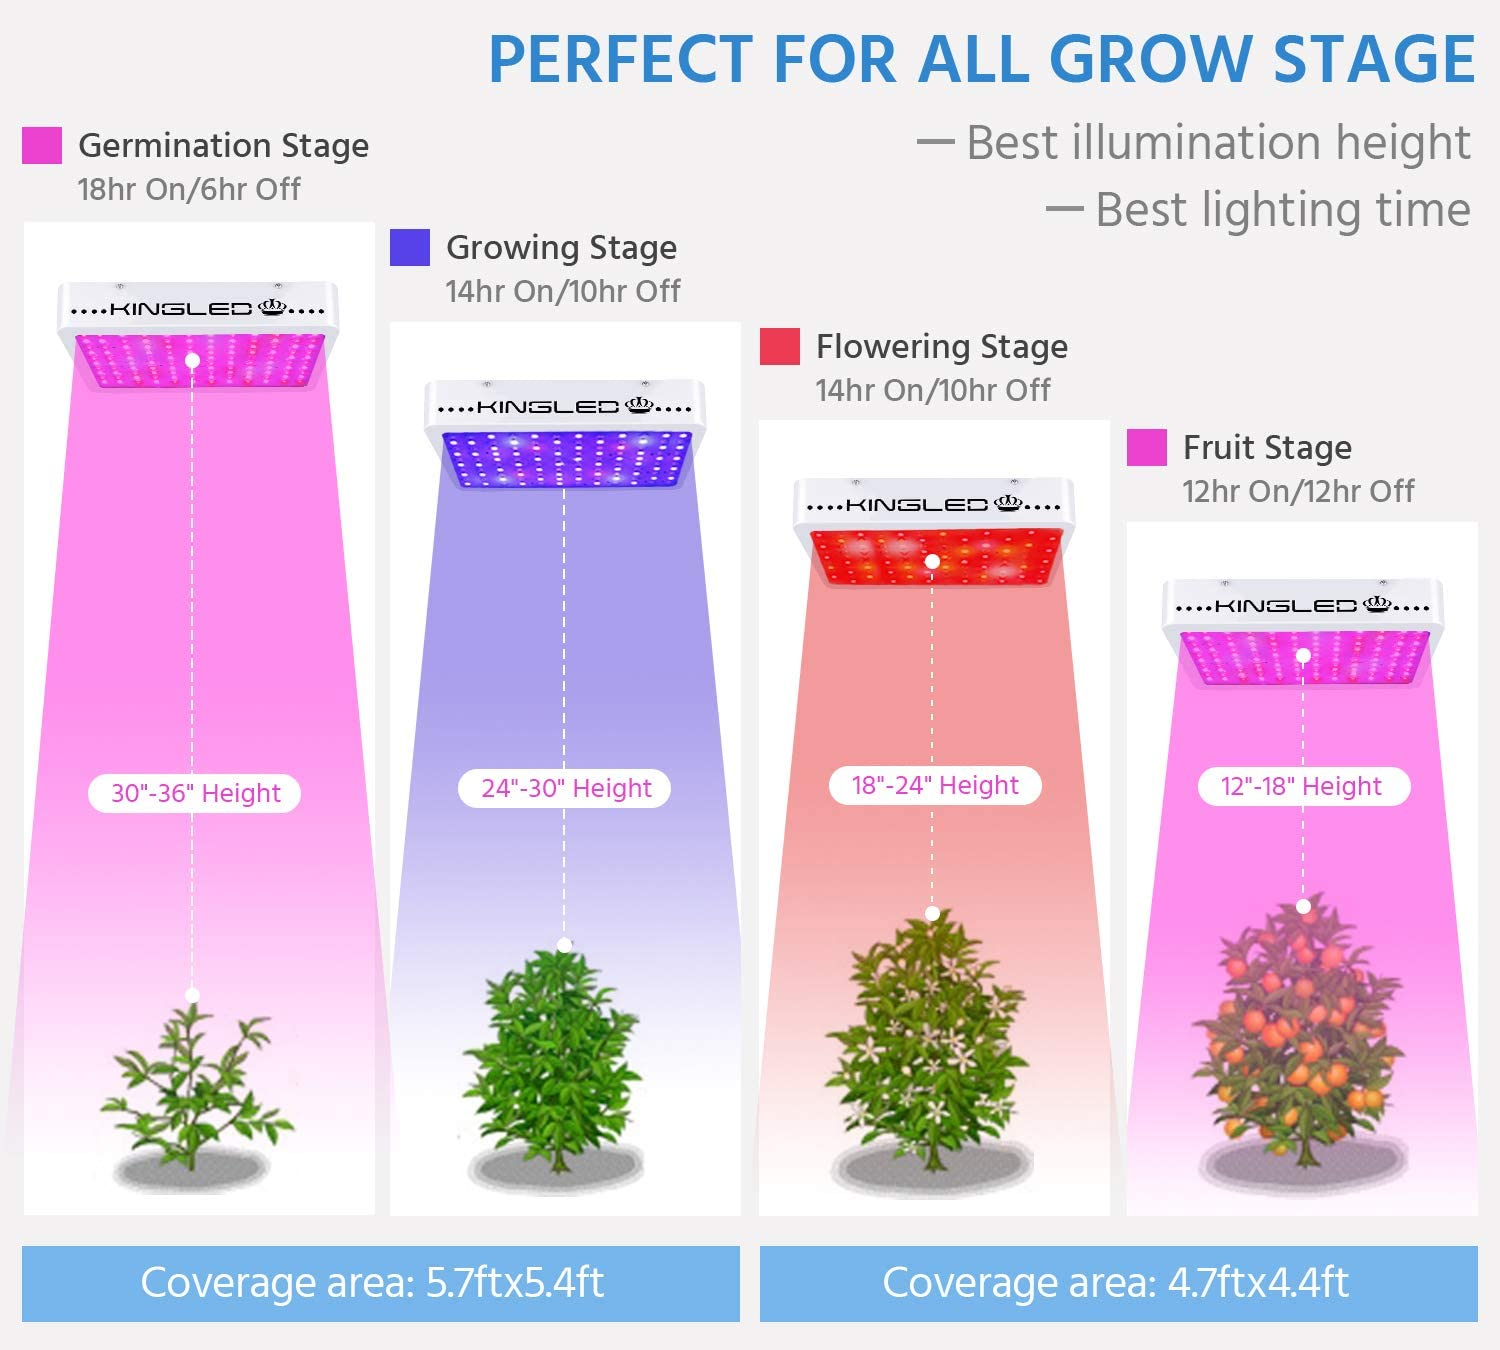 King Plus 1200w LED Grow Light Full Spectrum